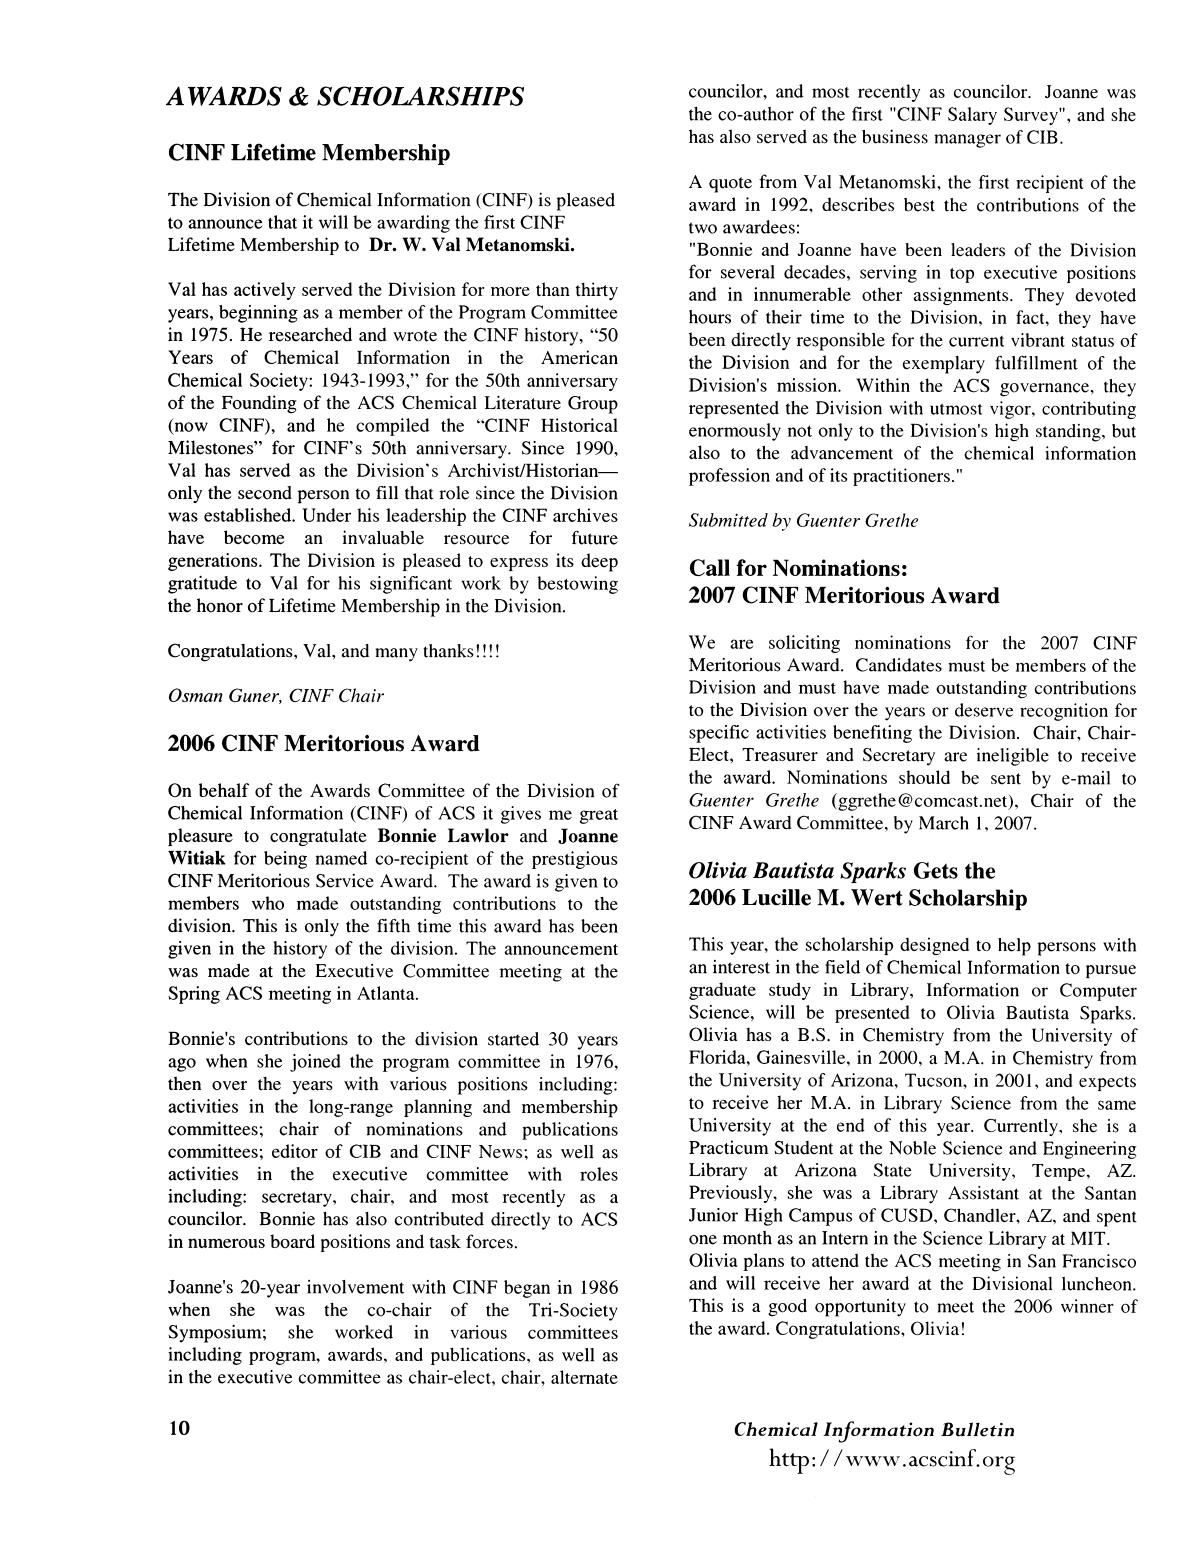 Chemical Information Bulletin, Volume 58, Number 2, Fall 2006                                                                                                      10